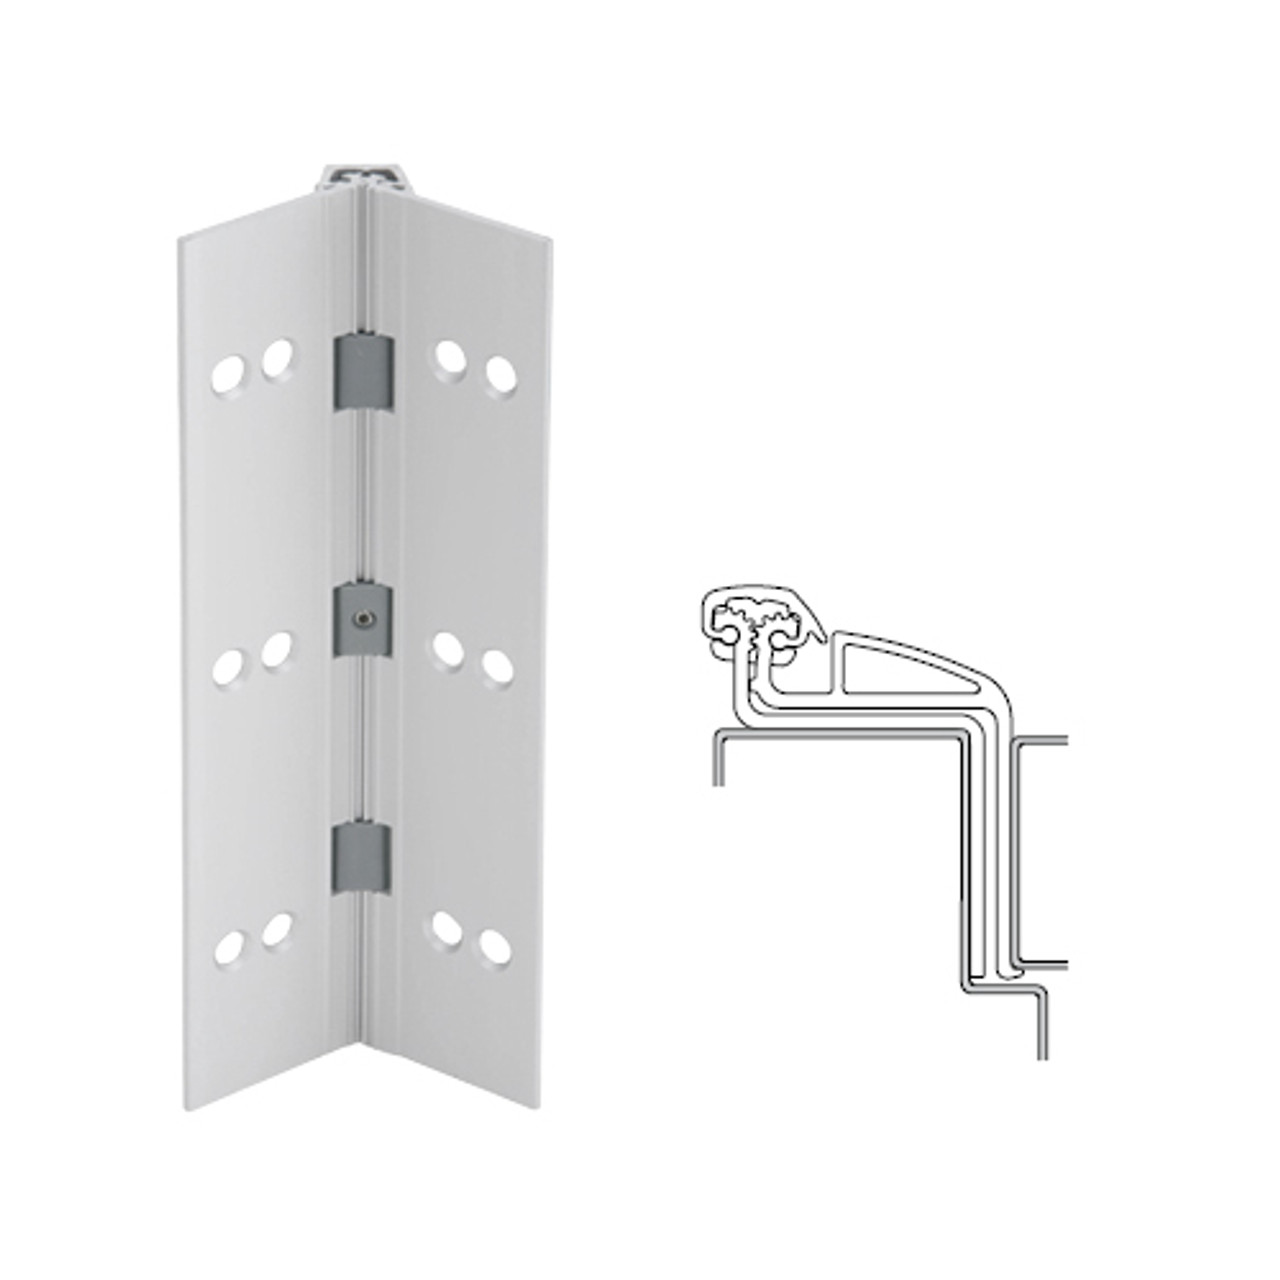 041XY-US28-85-SECWDWD IVES Full Mortise Continuous Geared Hinges with Security Screws - Hex Pin Drive in Satin Aluminum